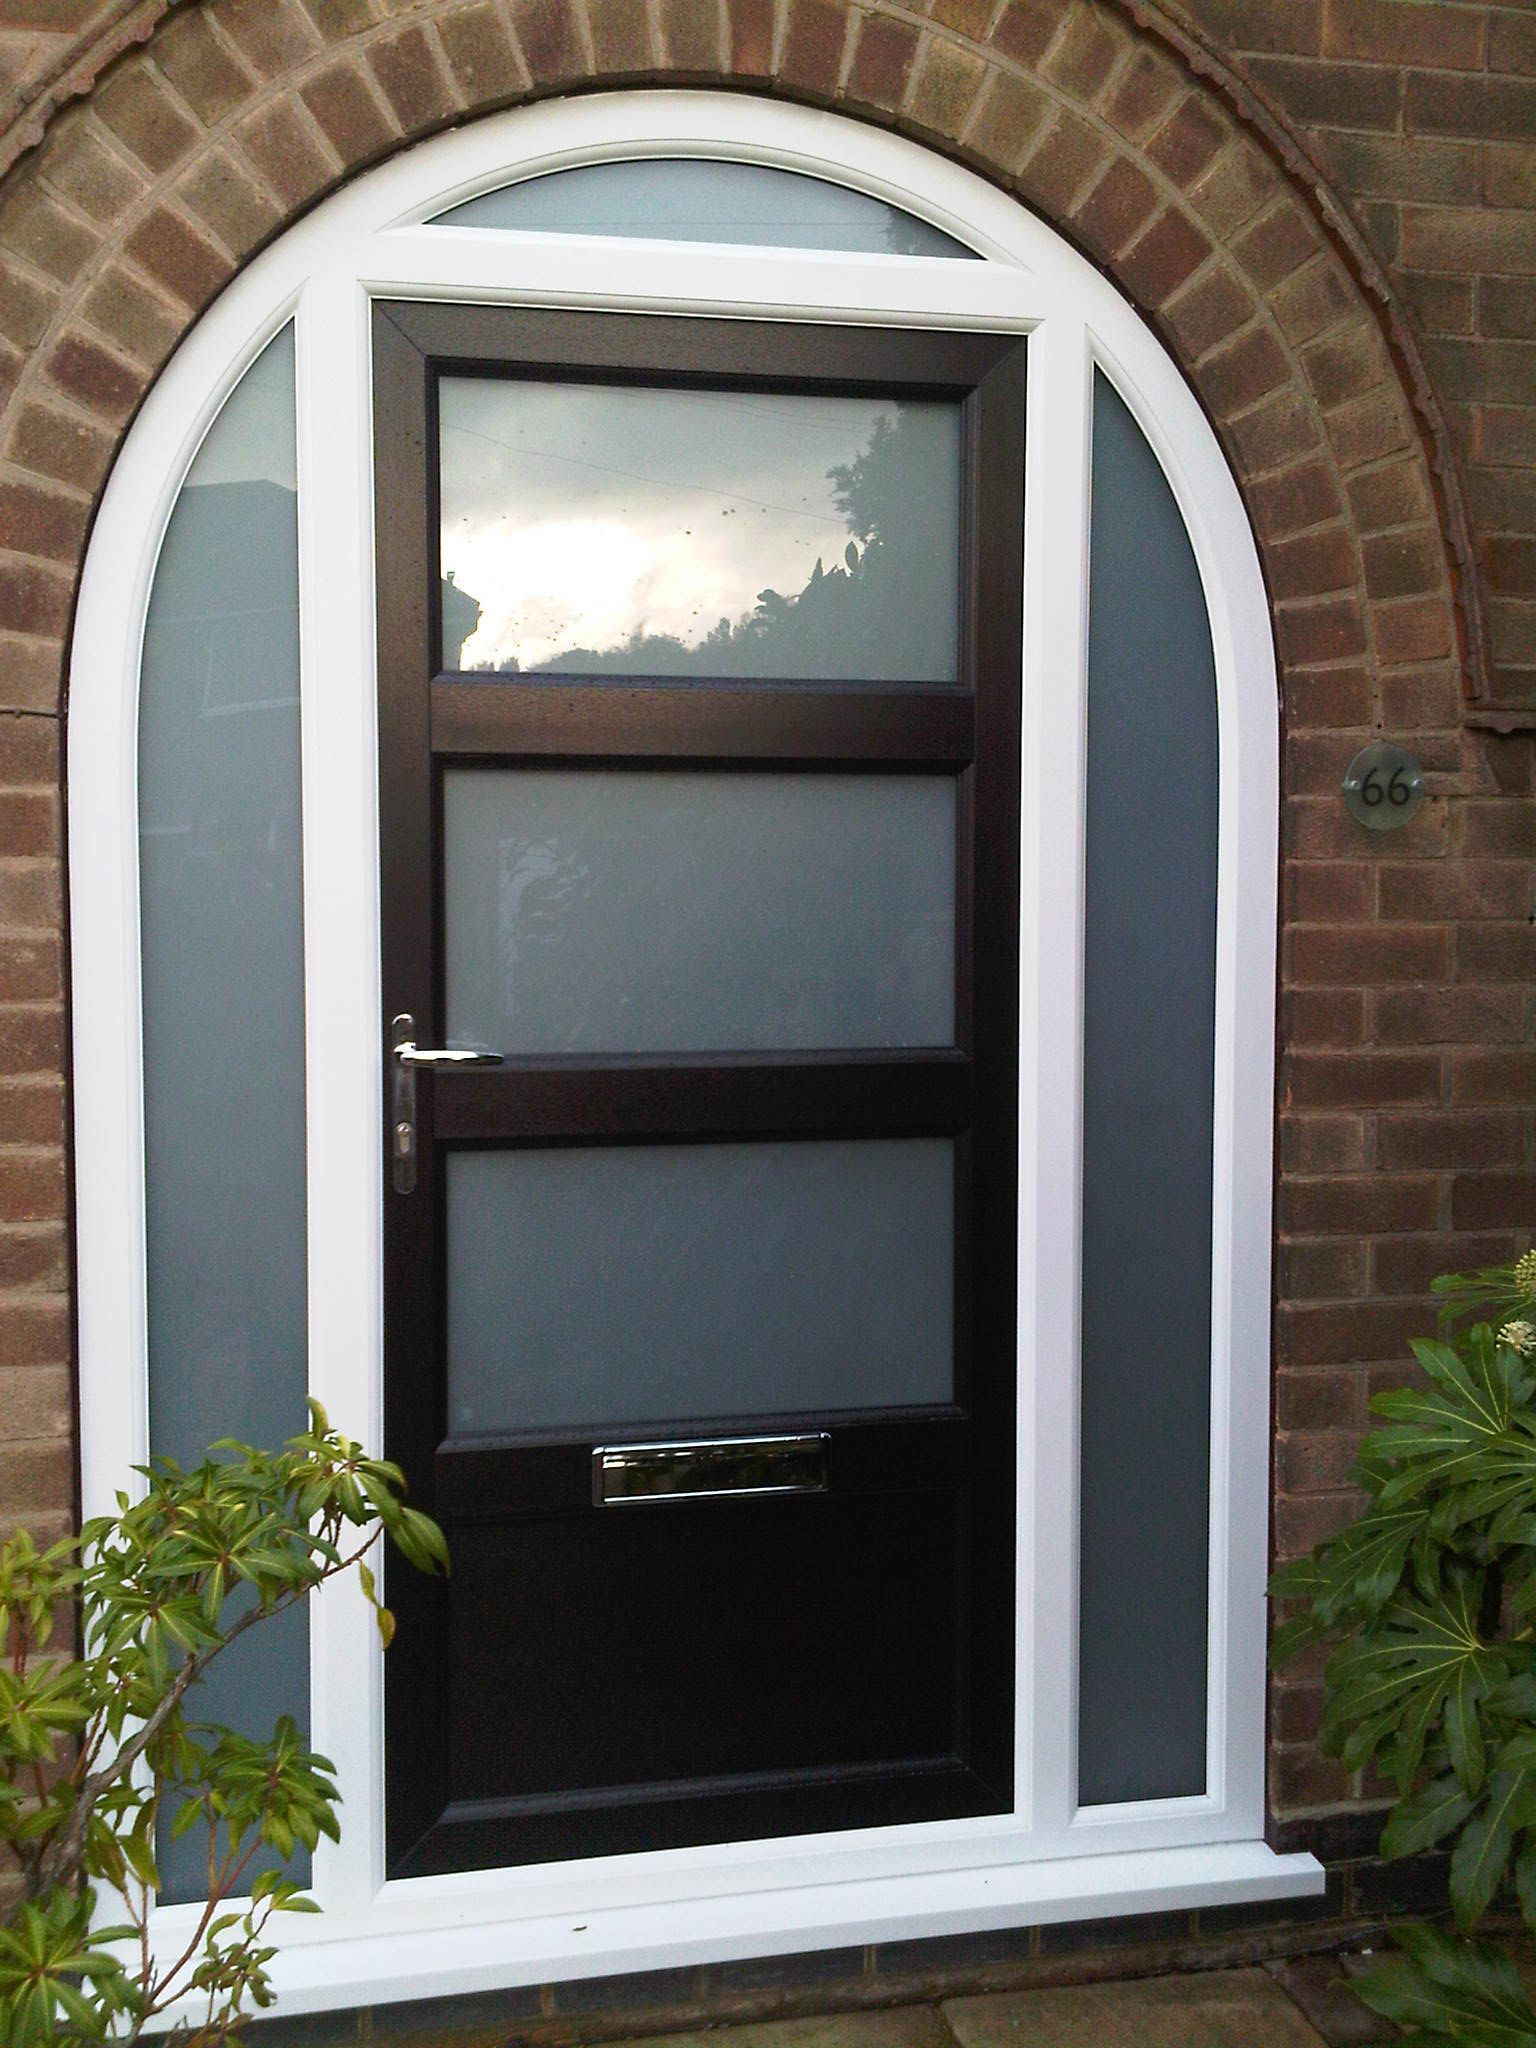 Bespoke UPVC door in black with arched top frame side panels